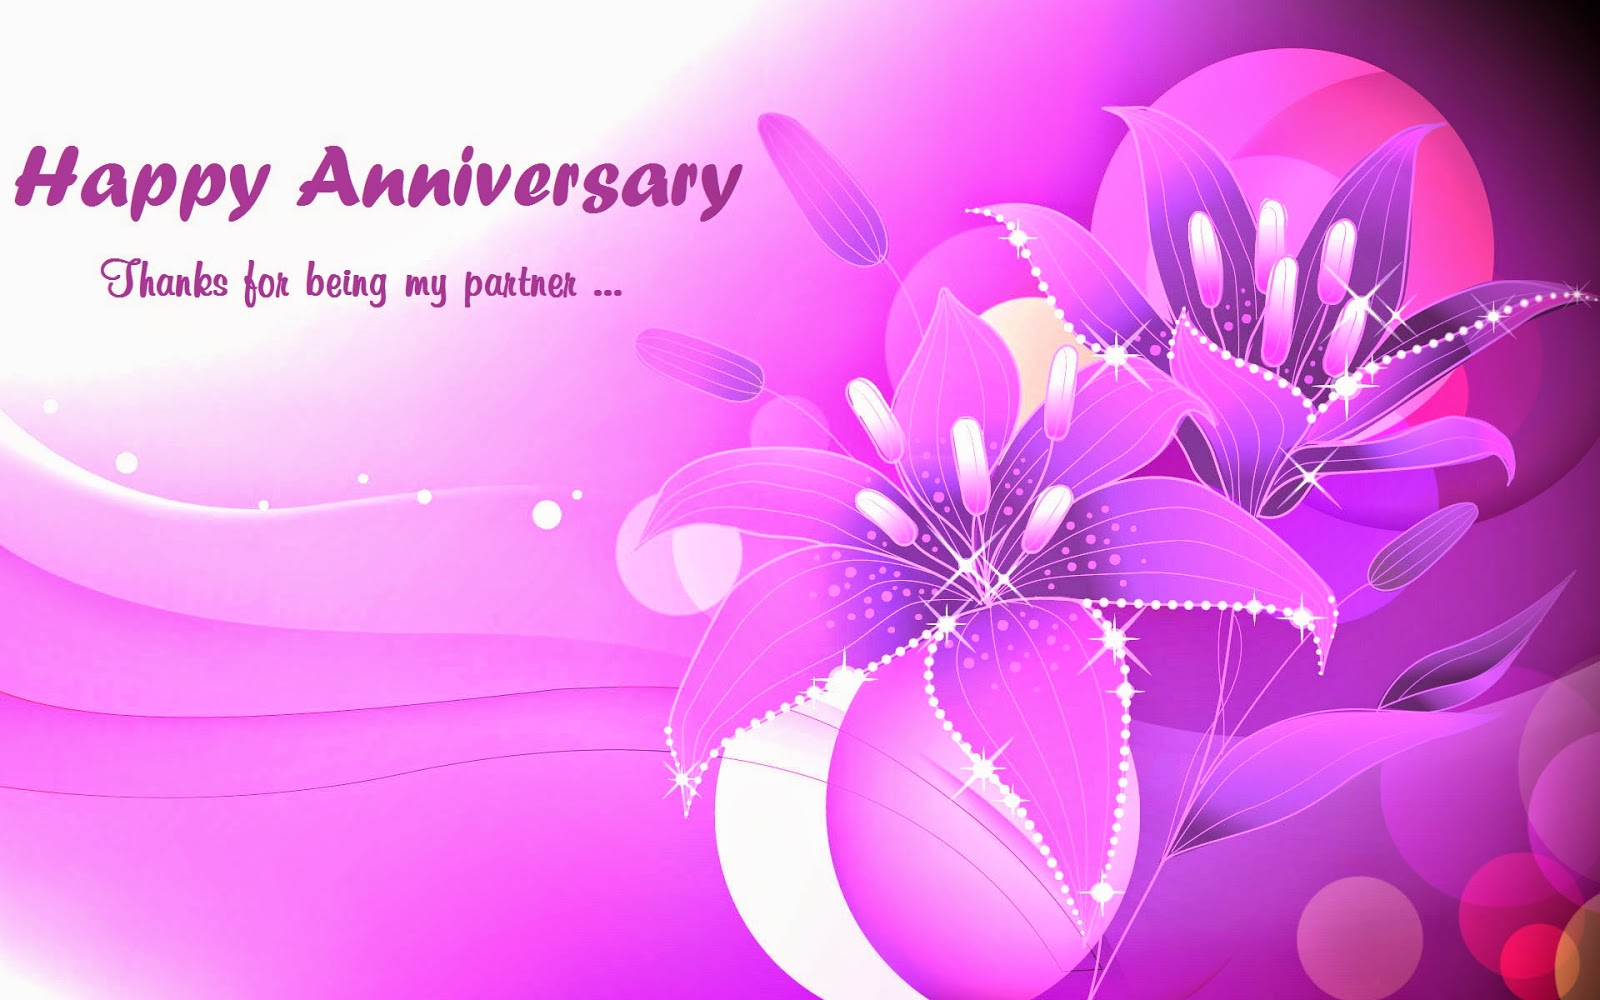 Happy wedding anniversary wishes images cards greetings photos for happy wedding marriage anniversary m4hsunfo